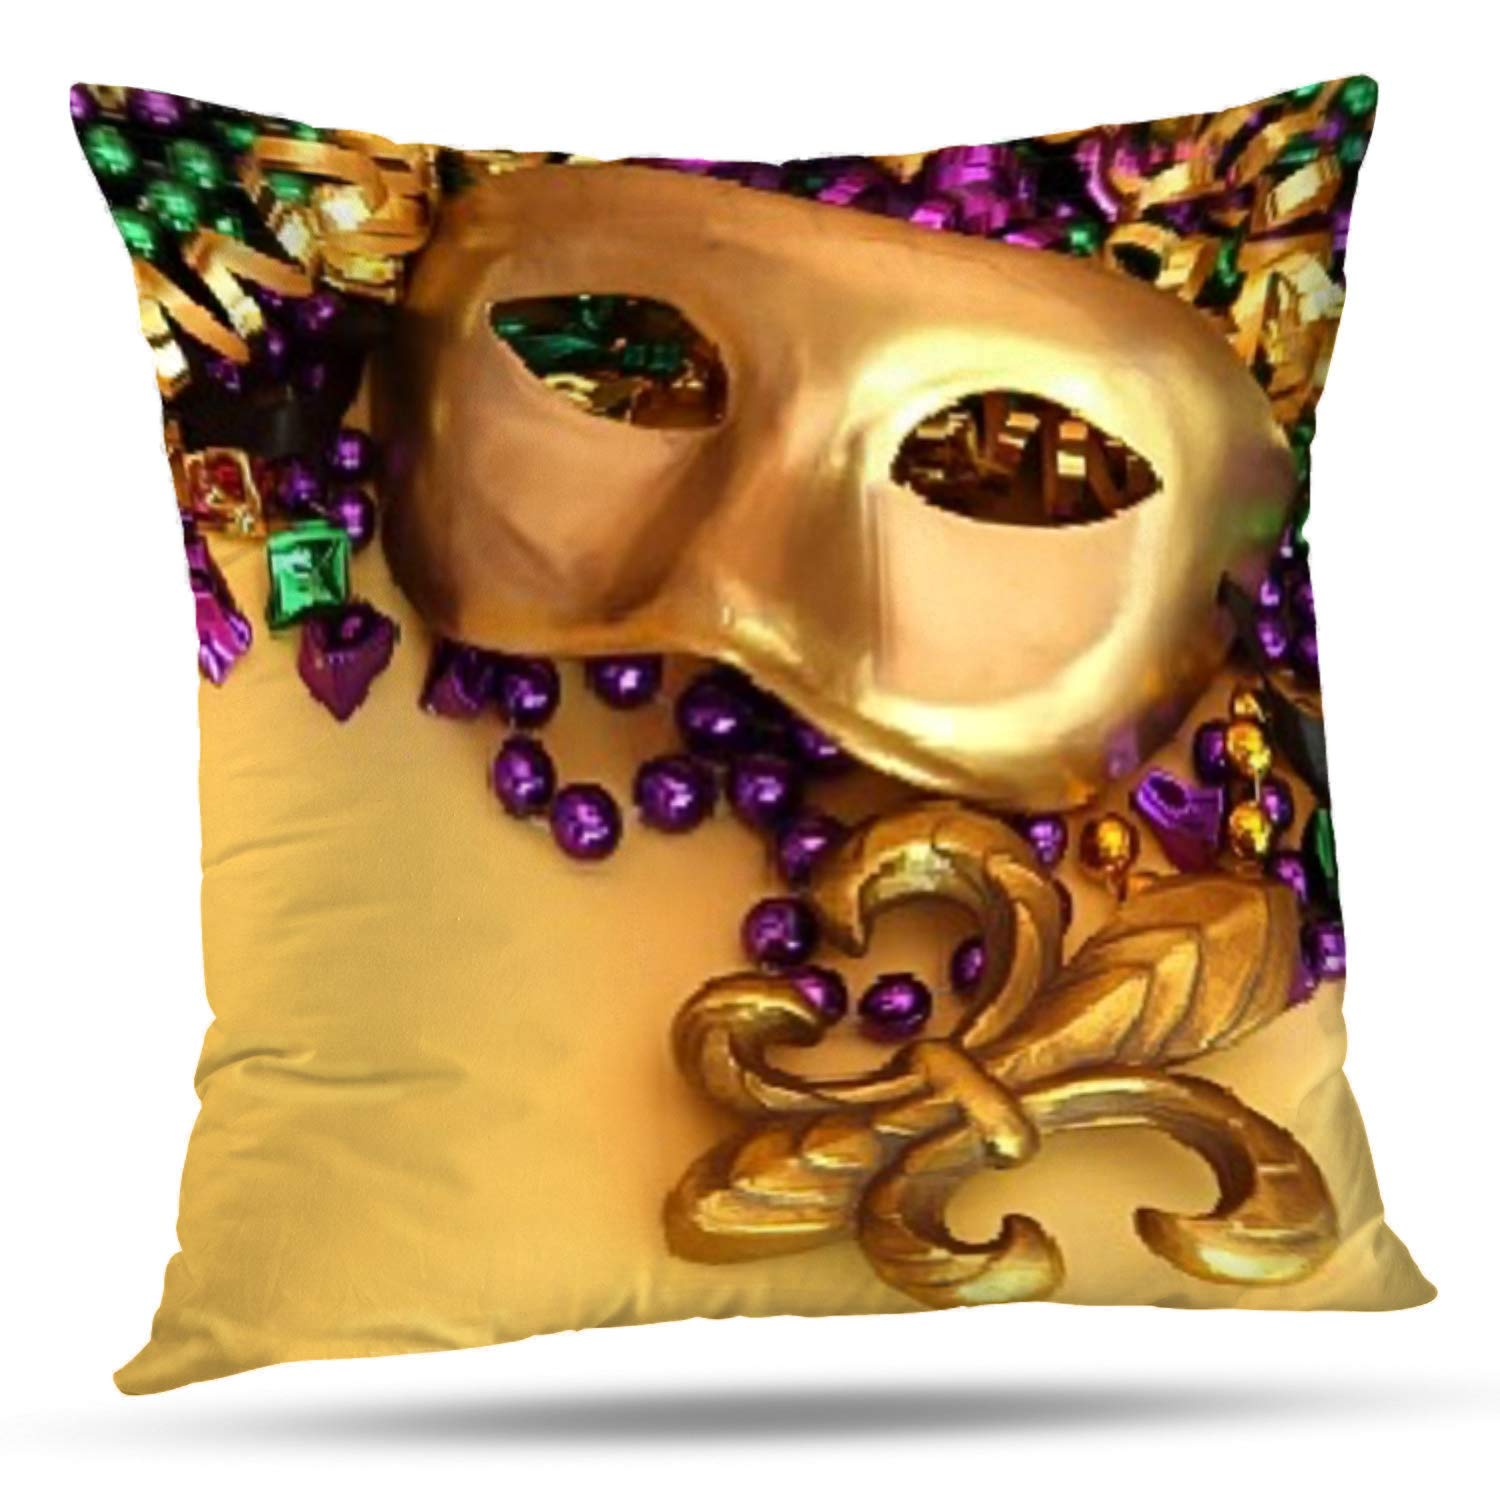 Darkchocl Set of 2 Daily Decoration Throw Pillow Covers Mardi Gras Mask Square Pillowcase Cushion for Couch Sofa or Bed Modern Quality Design Cotton and Polyester 18 x 18